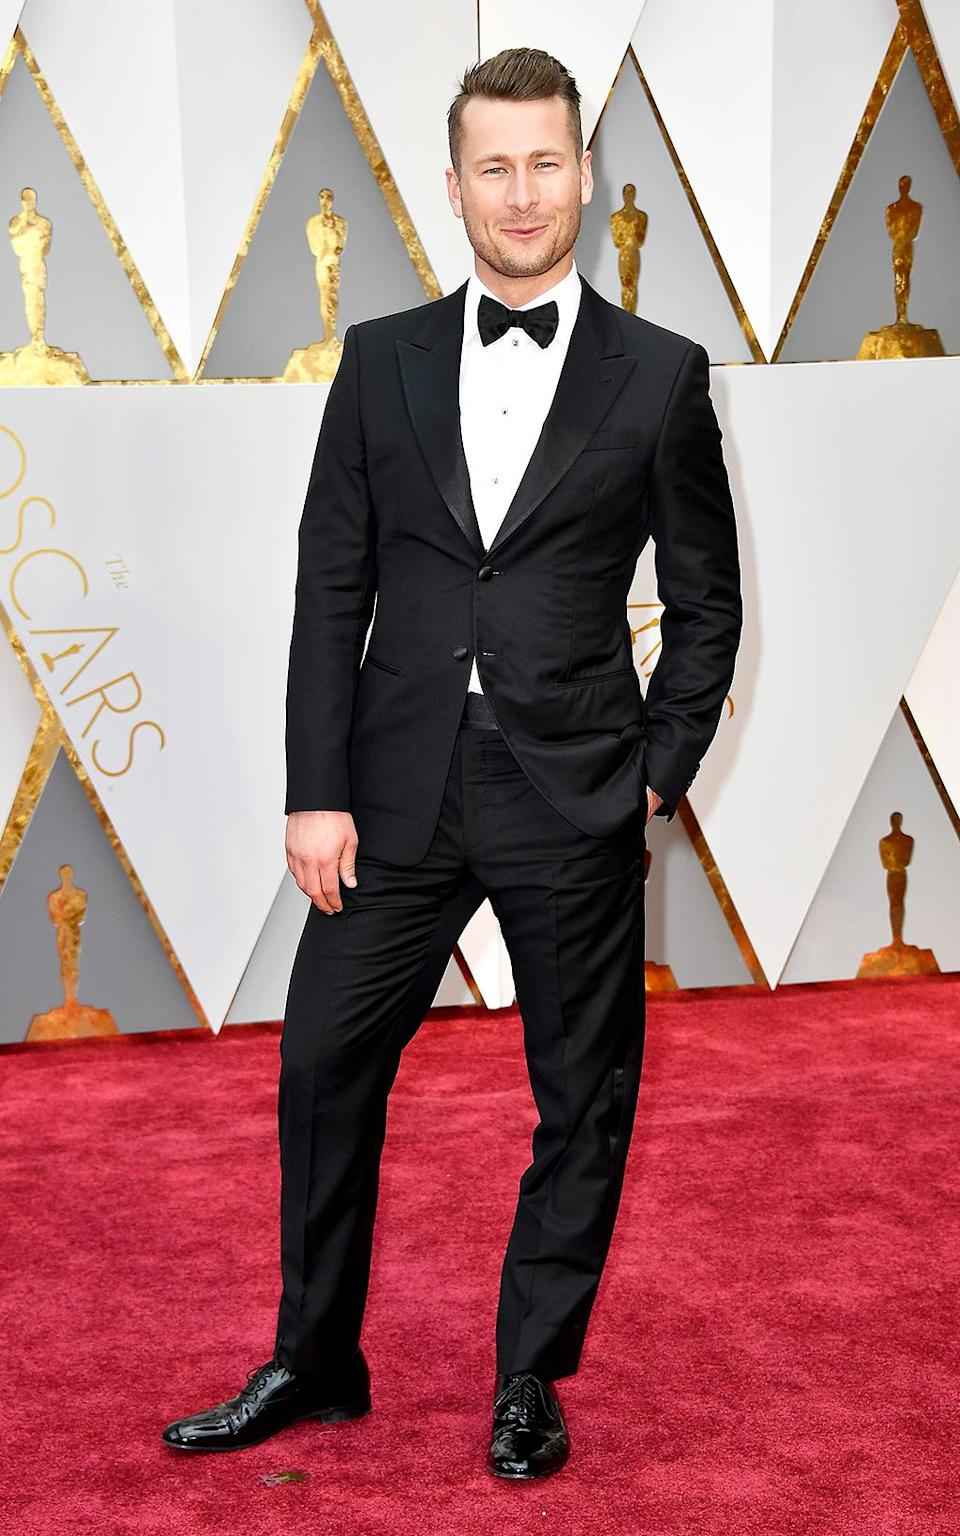 <p>Actor Glen Powell attends the 89th Annual Academy Awards at Hollywood & Highland Center on Feb. 26, 2017 in Hollywood, California. (Photo by Frazer Harrison/Getty Images) </p>